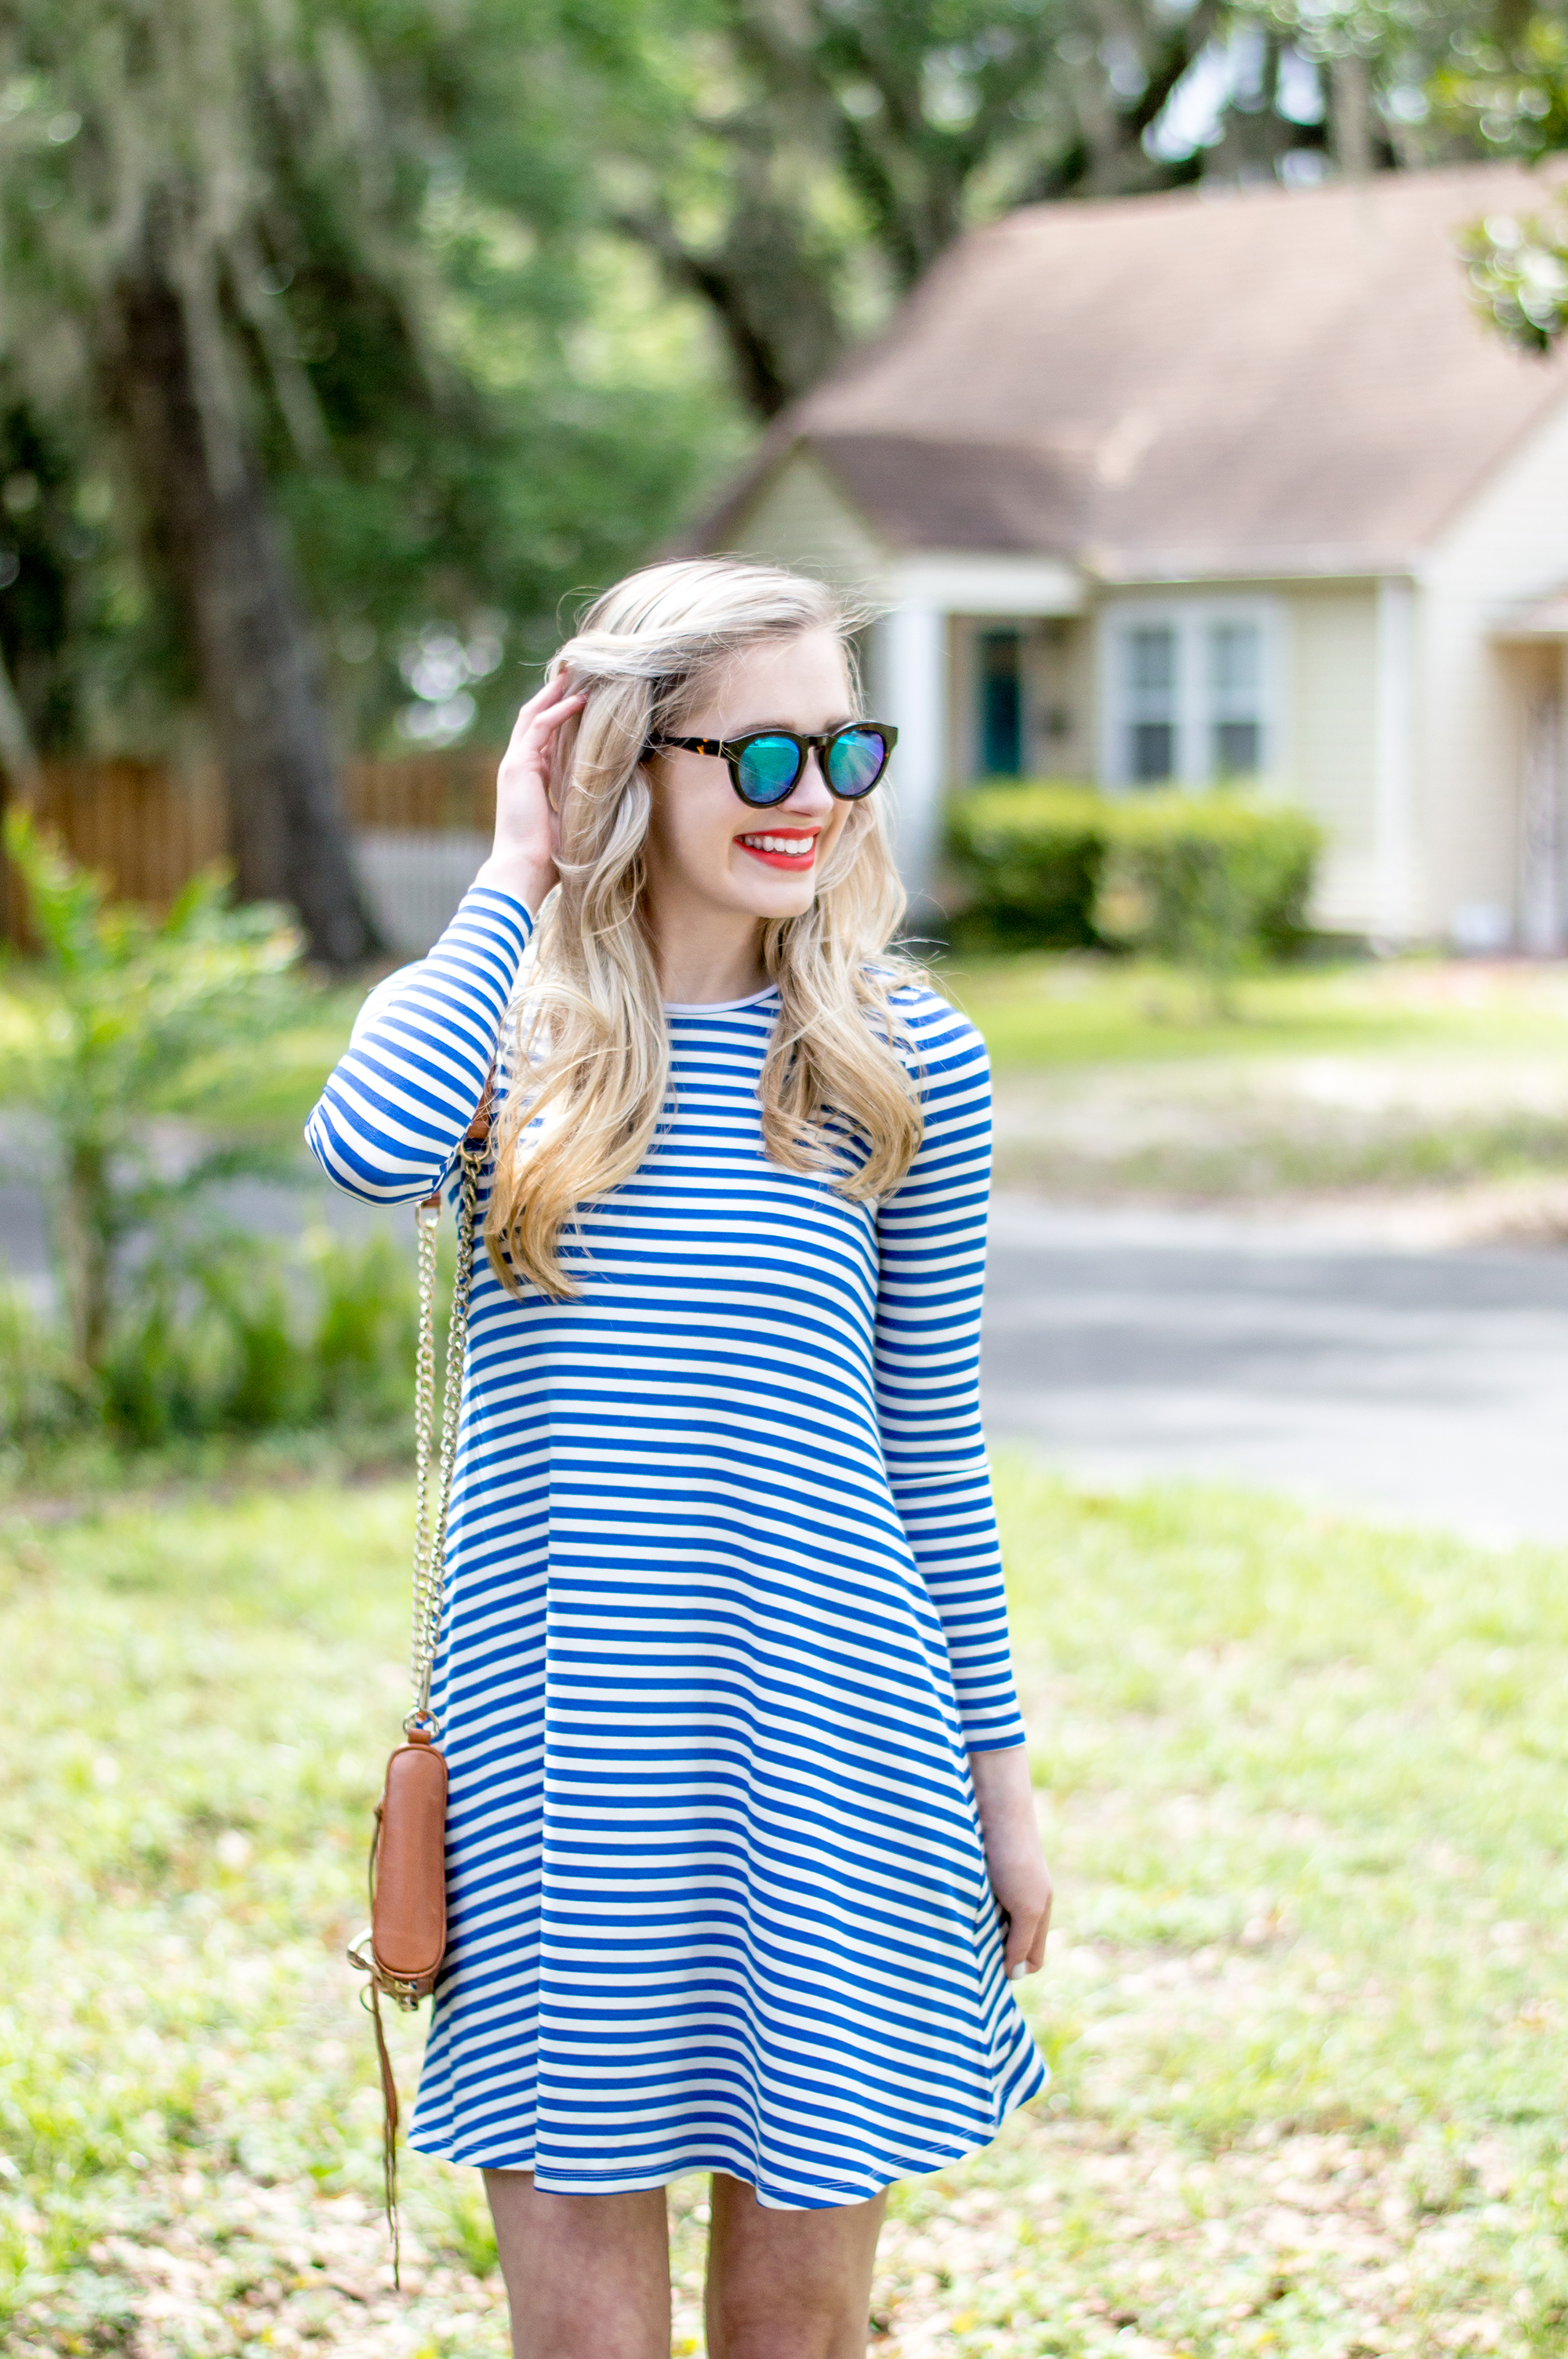 styelled-blog-fashion-style-beauty-lifestyle-blogger-florida-like-to-know-it-jane-hudson-stripes-striped-stripe-dress-sundress-memorial-day-diff-eyewear-sunglasses-rebecca-minkoff-01